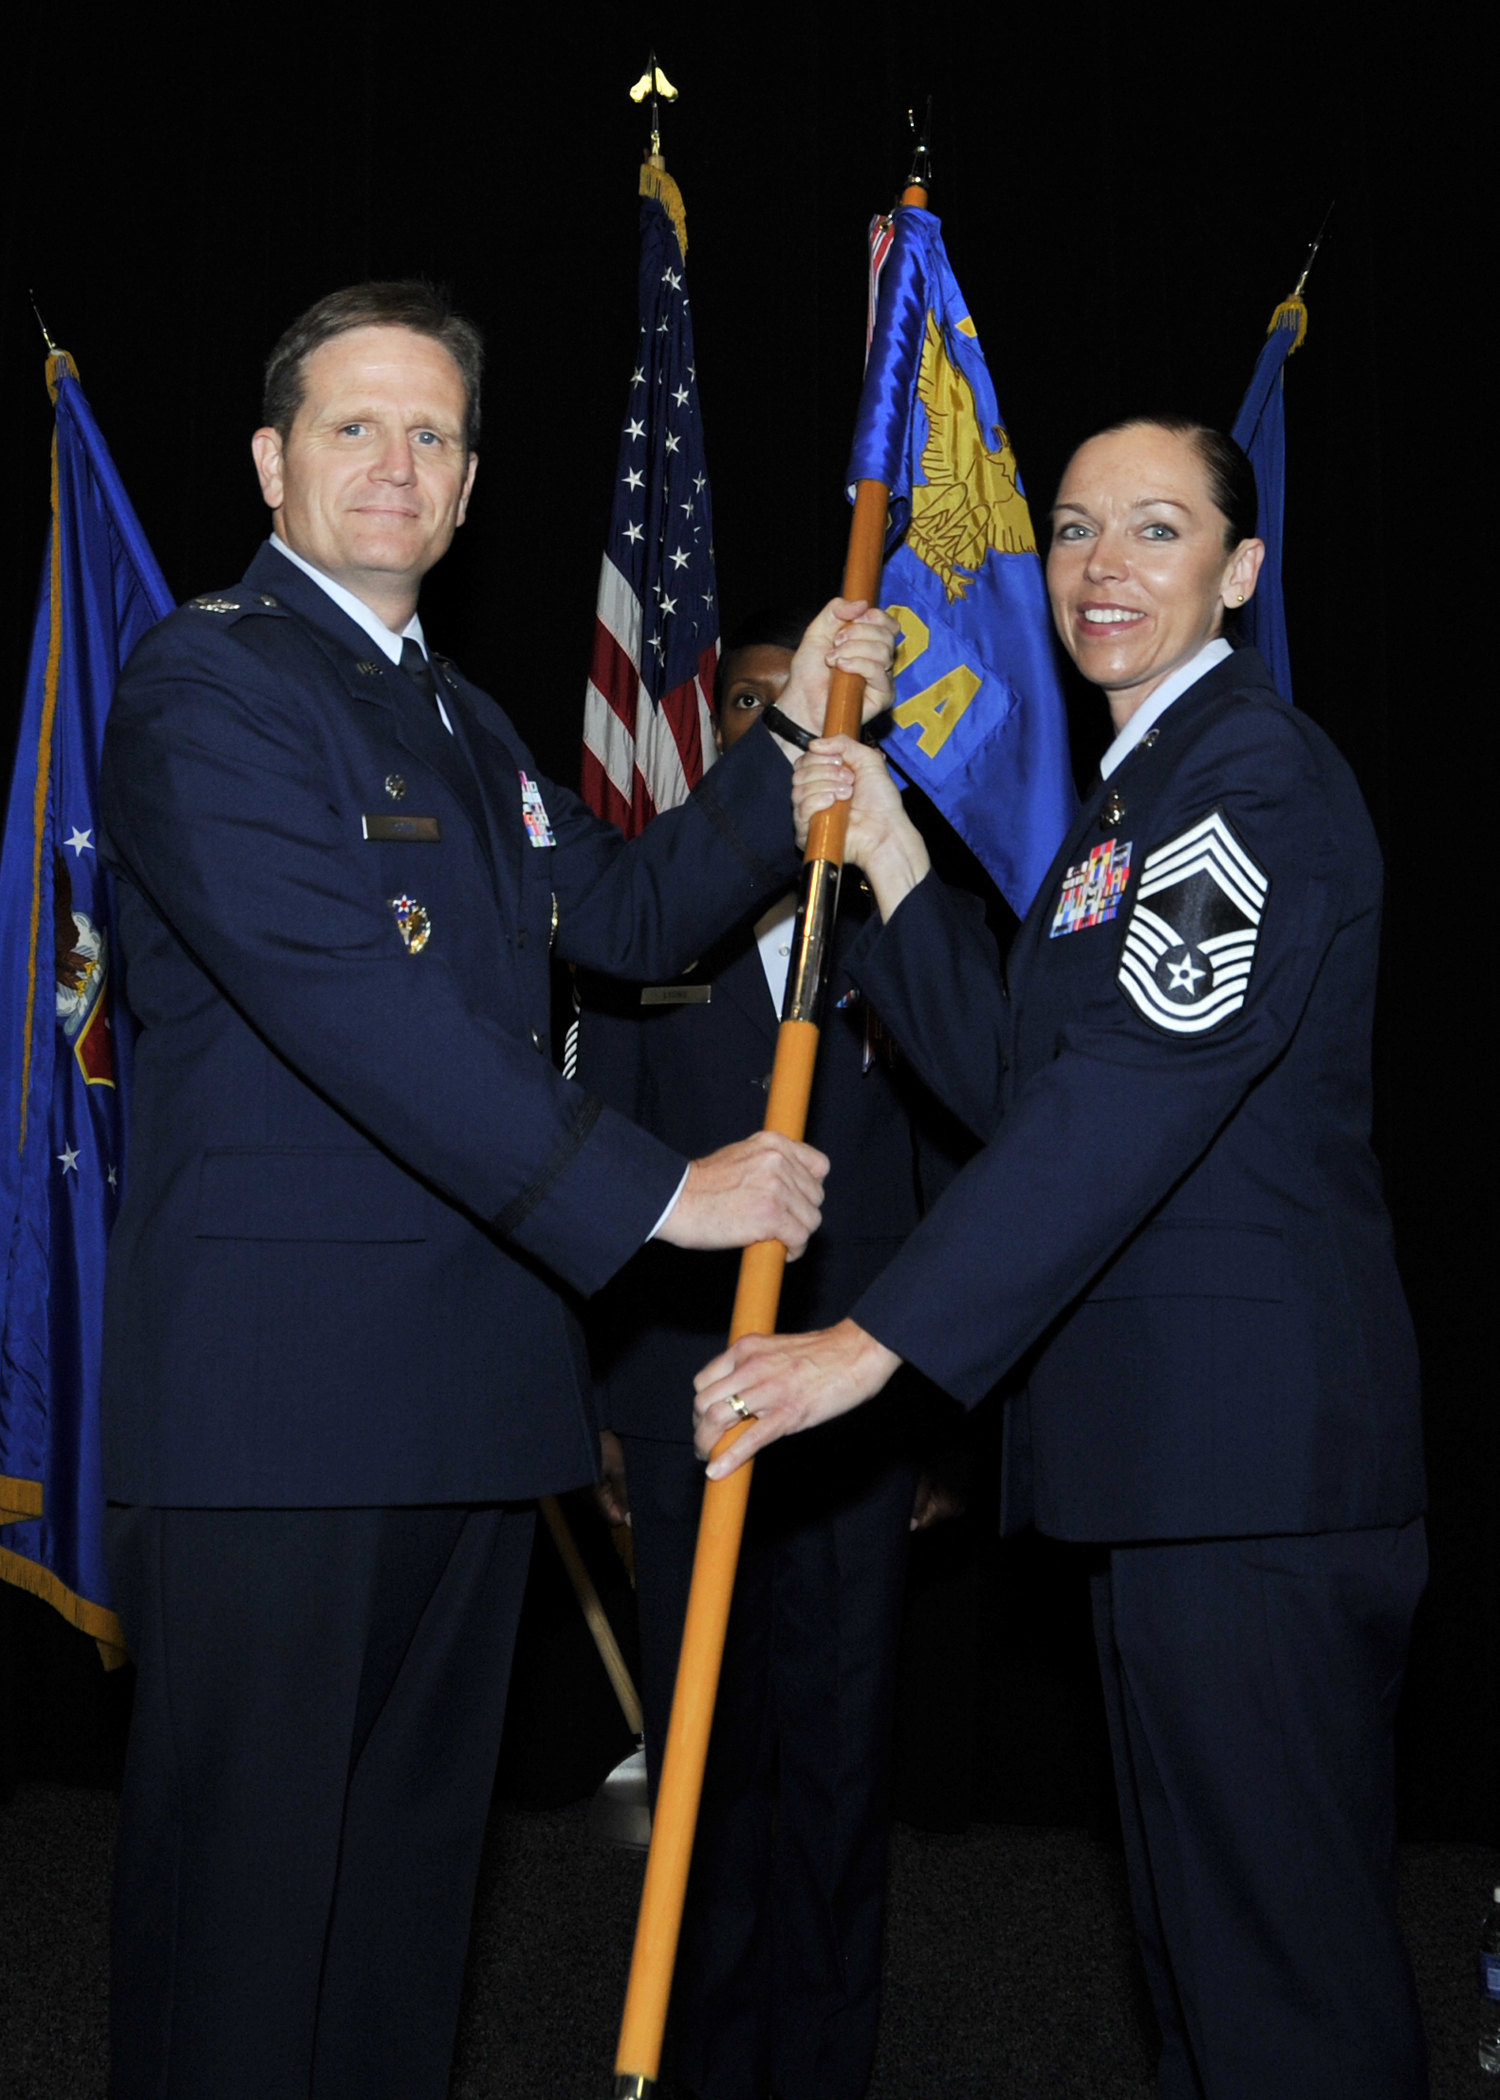 NCO and Lower Enlisted